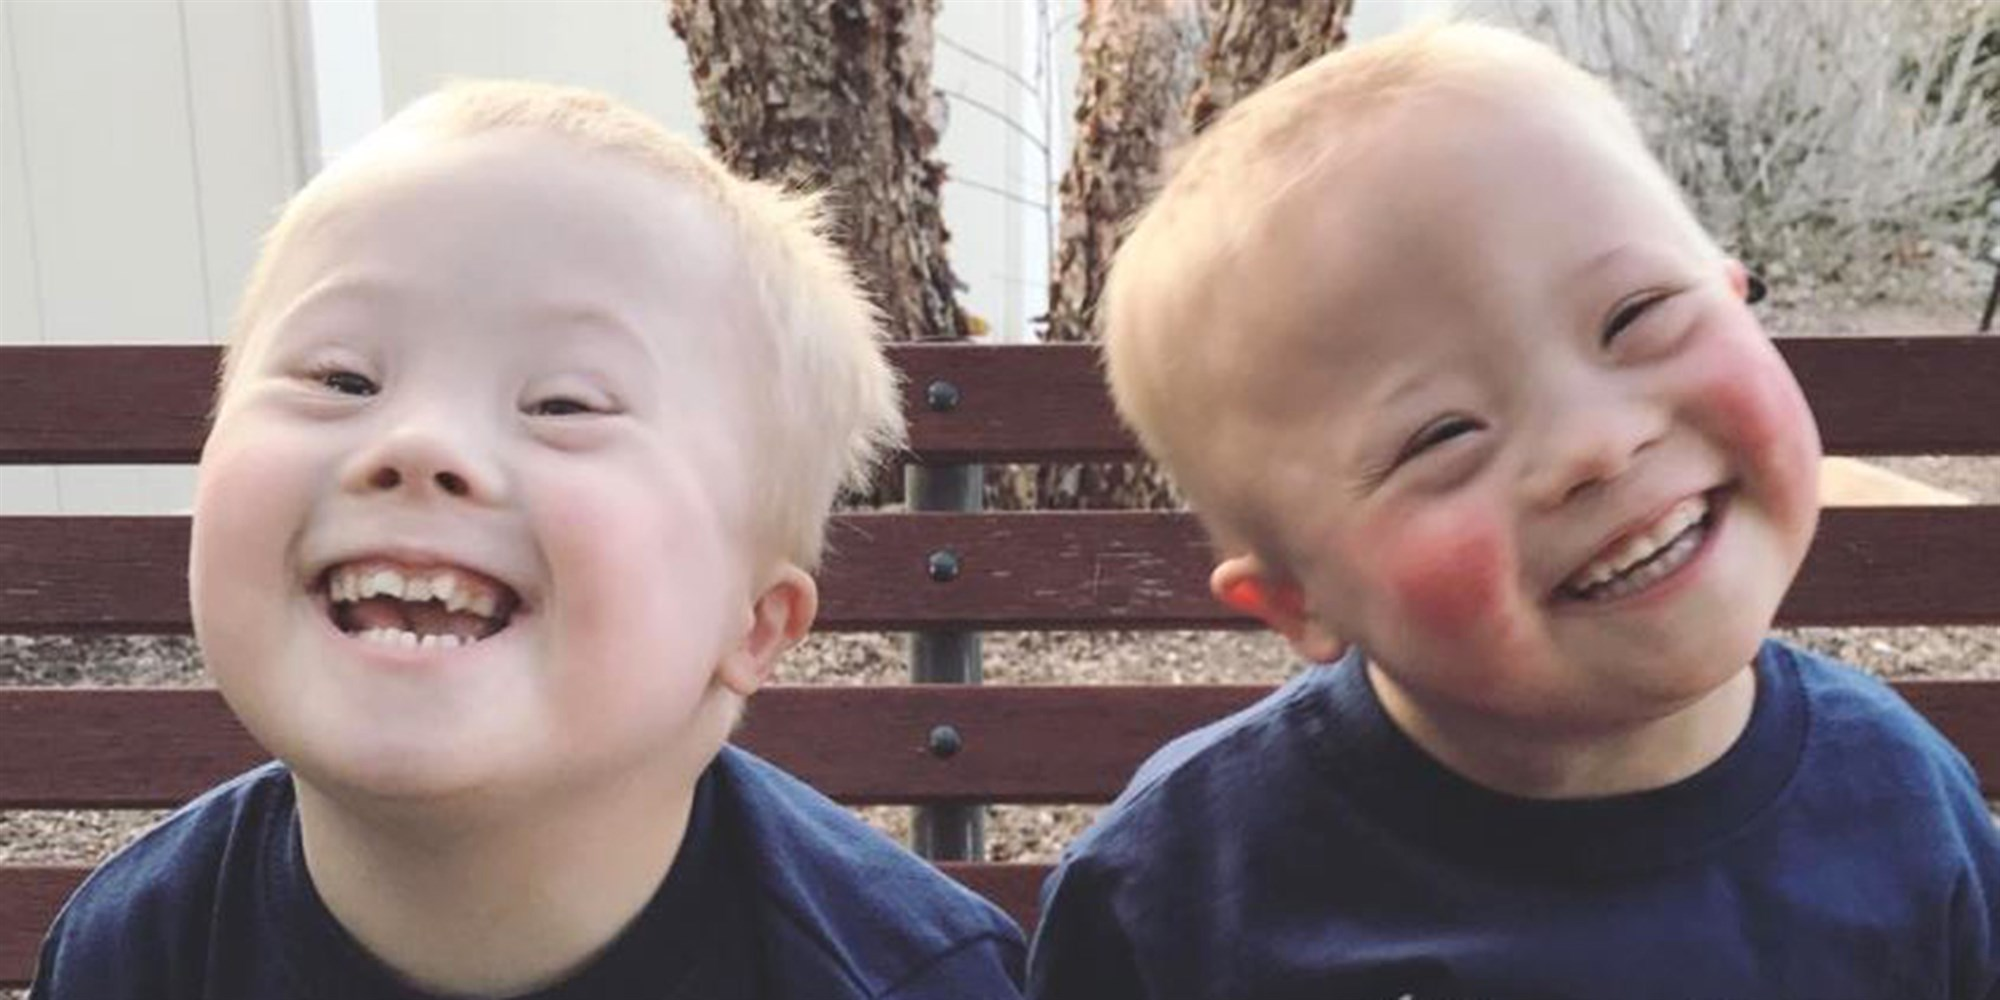 twin-boys-with-down-syndrome-today-main-190326-001_24f2b32fff79b6c7554c1d12bd8a0c06.fit-2000w.jpg